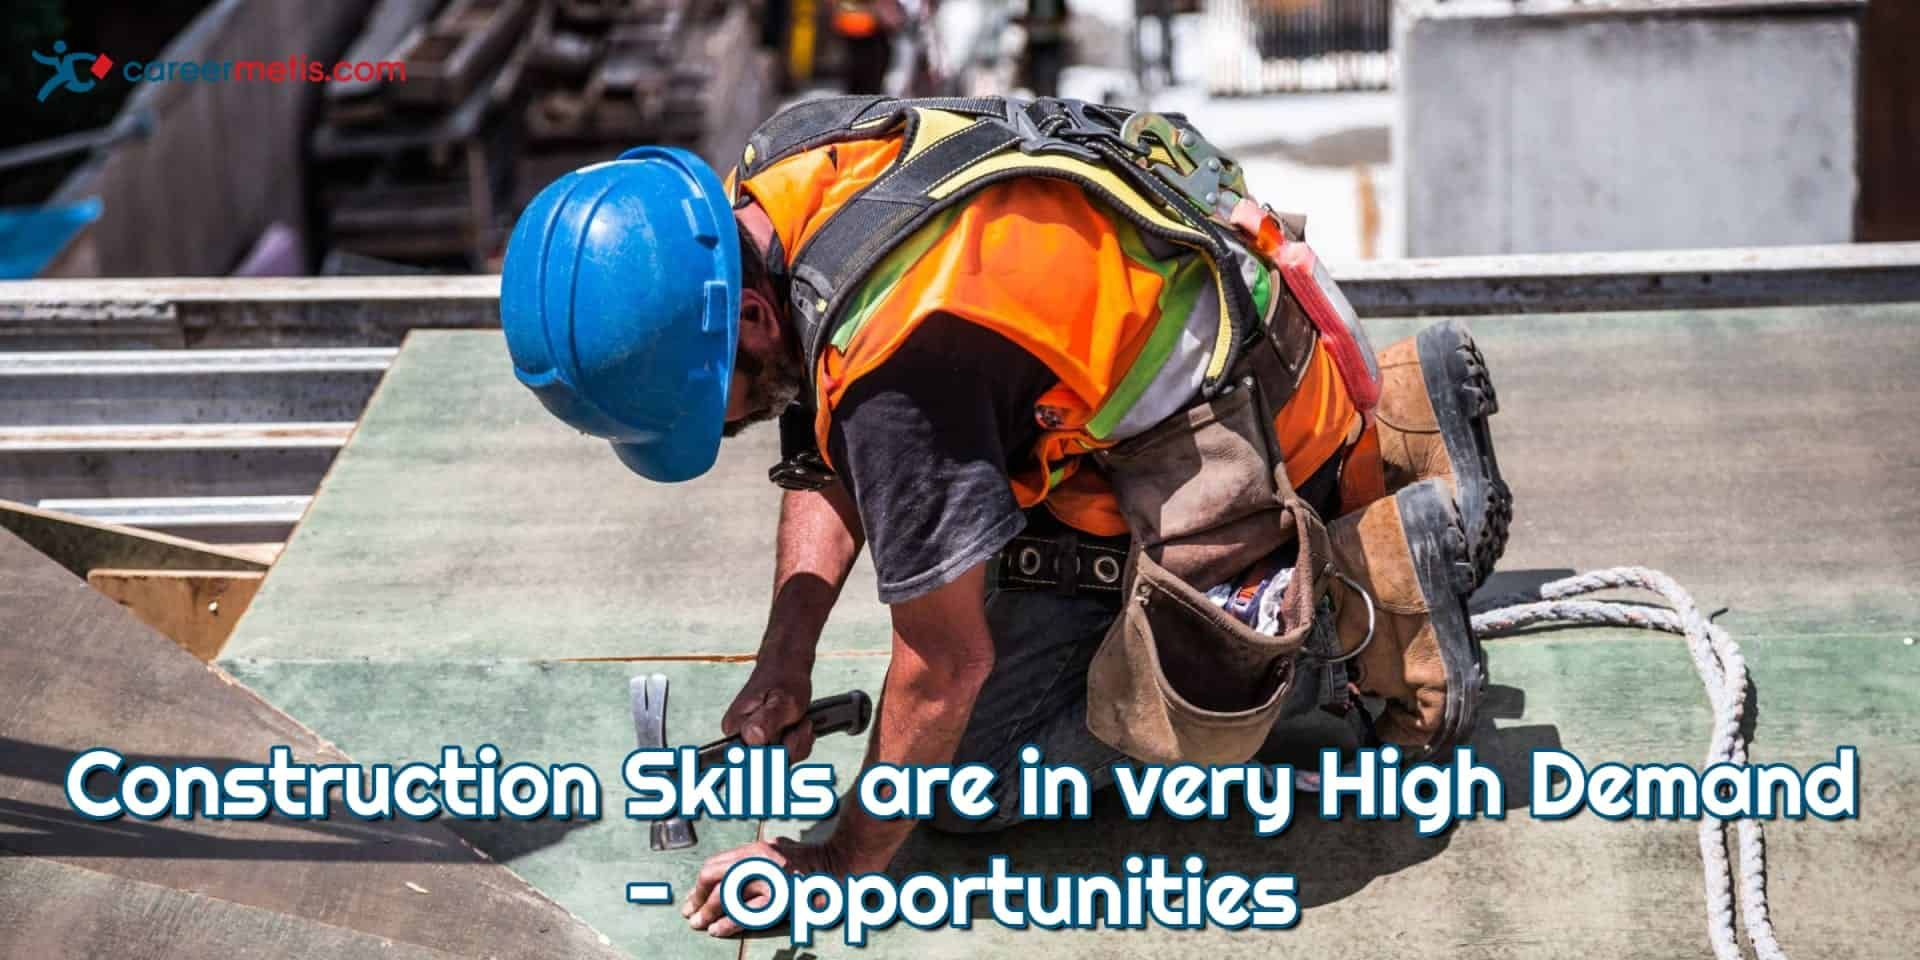 Construction Skills are in very High Demand Have you